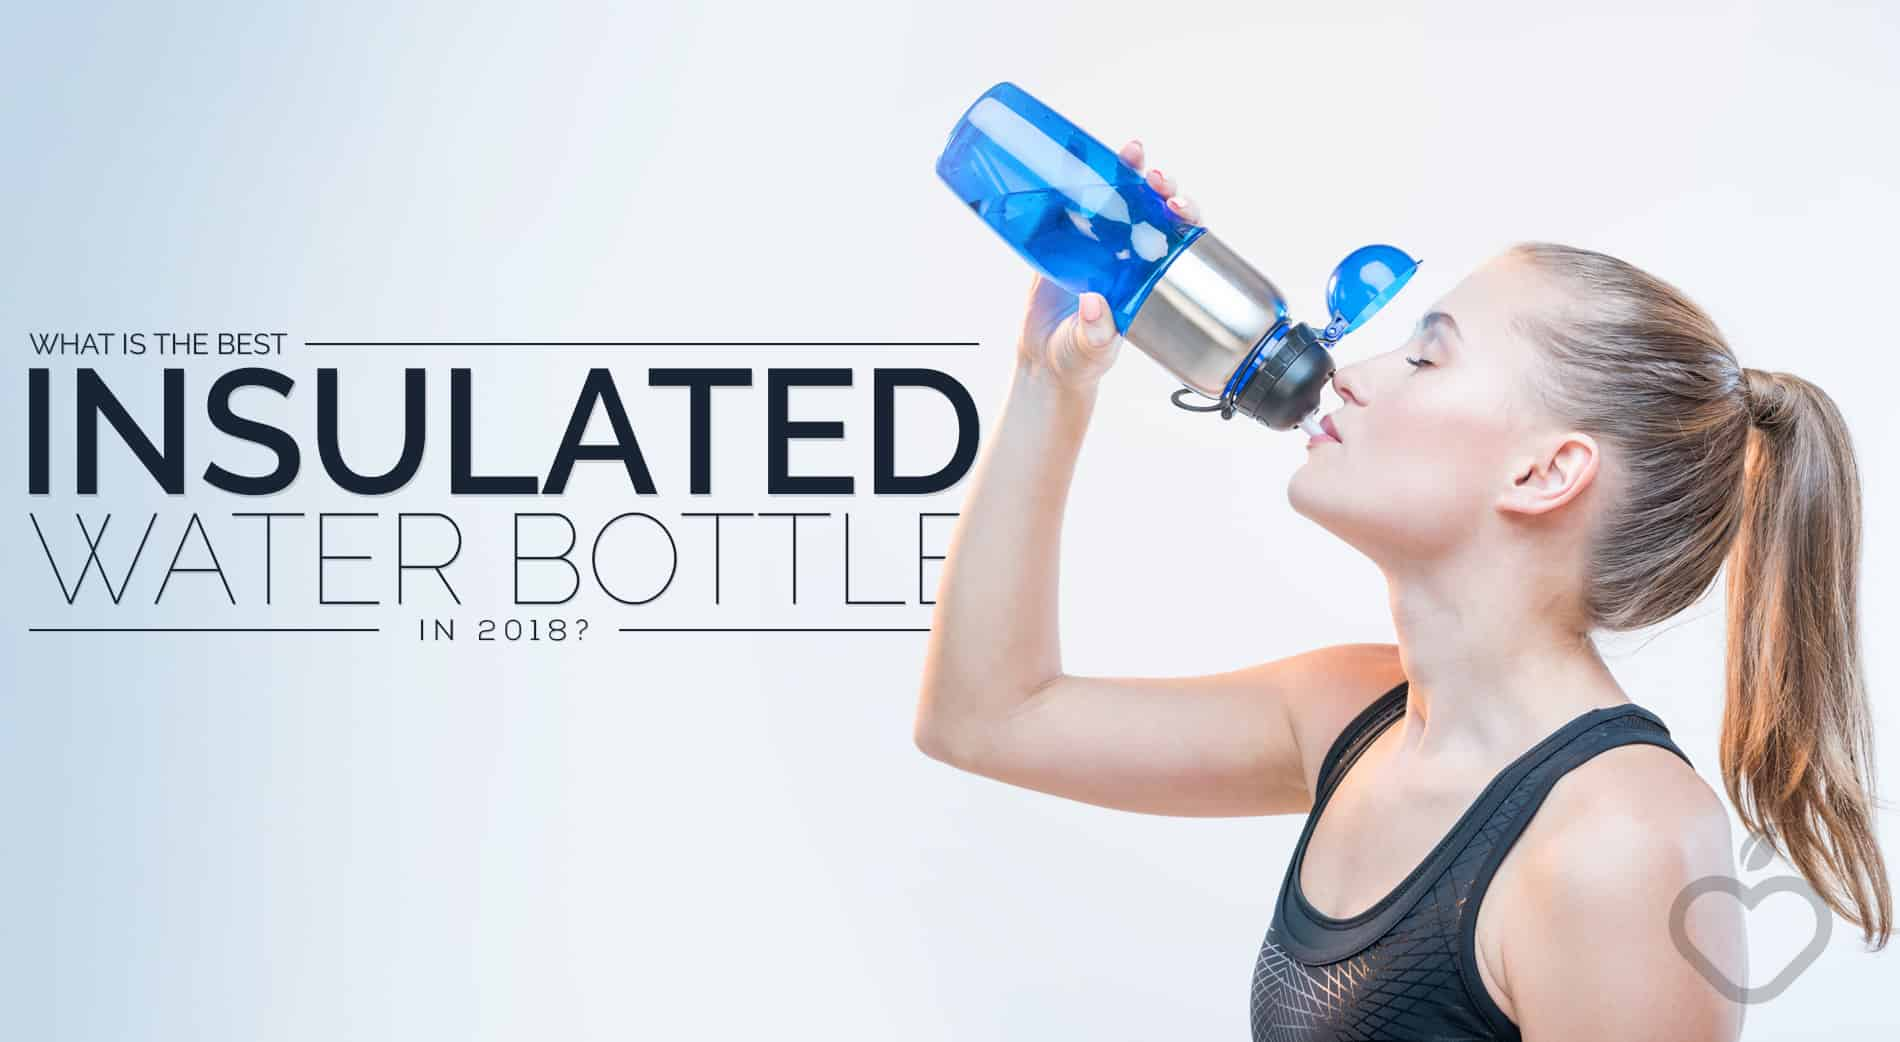 Insulated Water Bottle Image Design 1 - What Is The Finest Insulated Water Bottle In 2018?